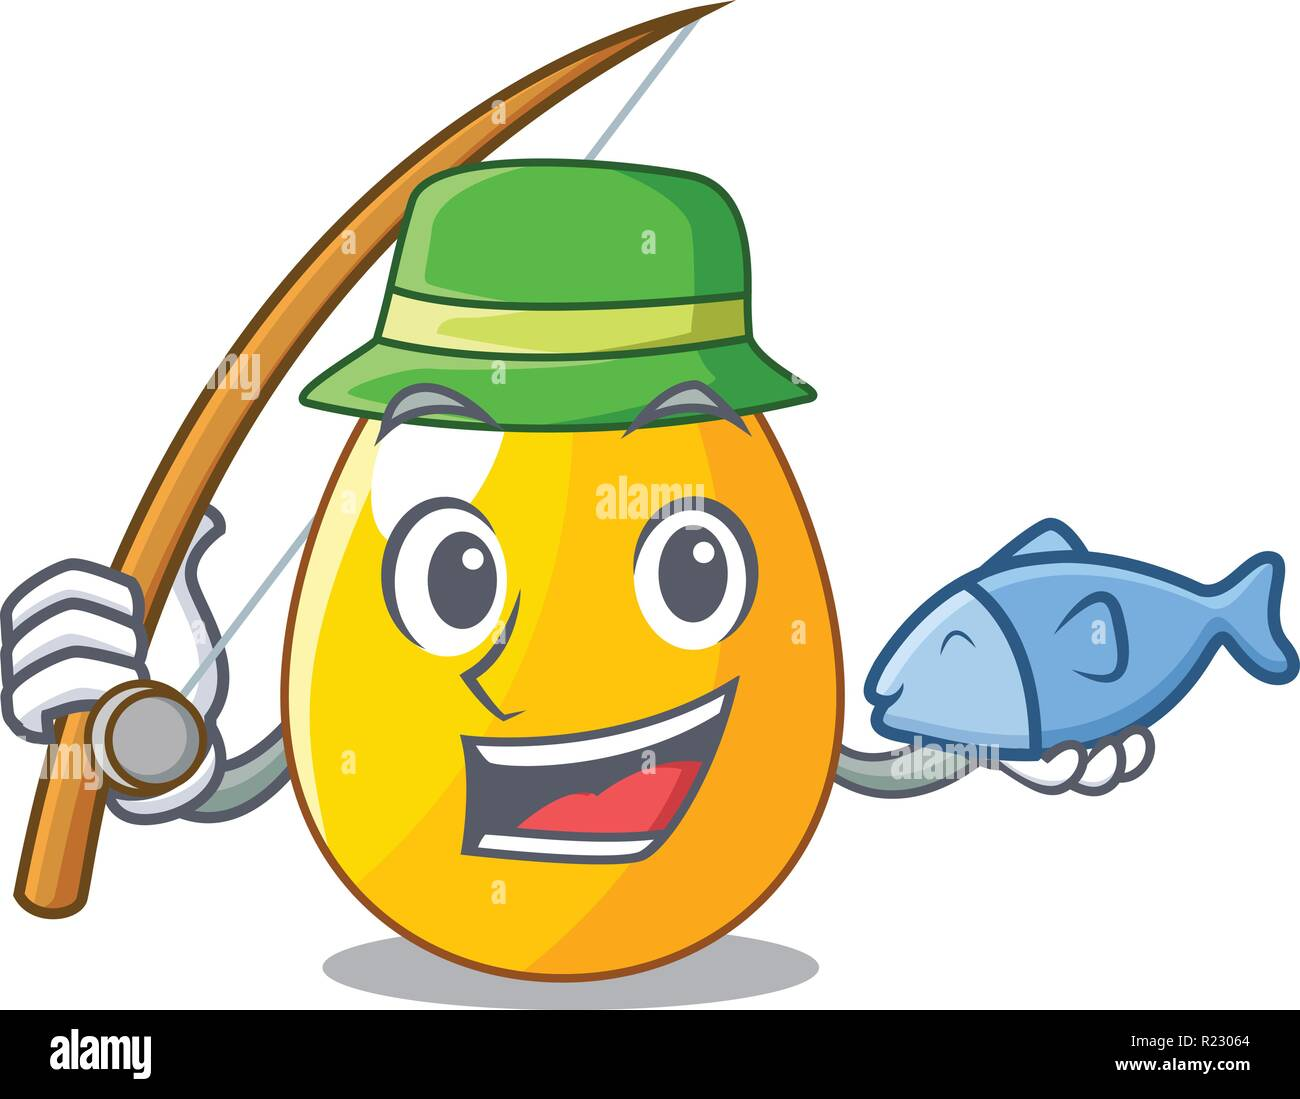 Fishing simple gold egg on design character - Stock Image